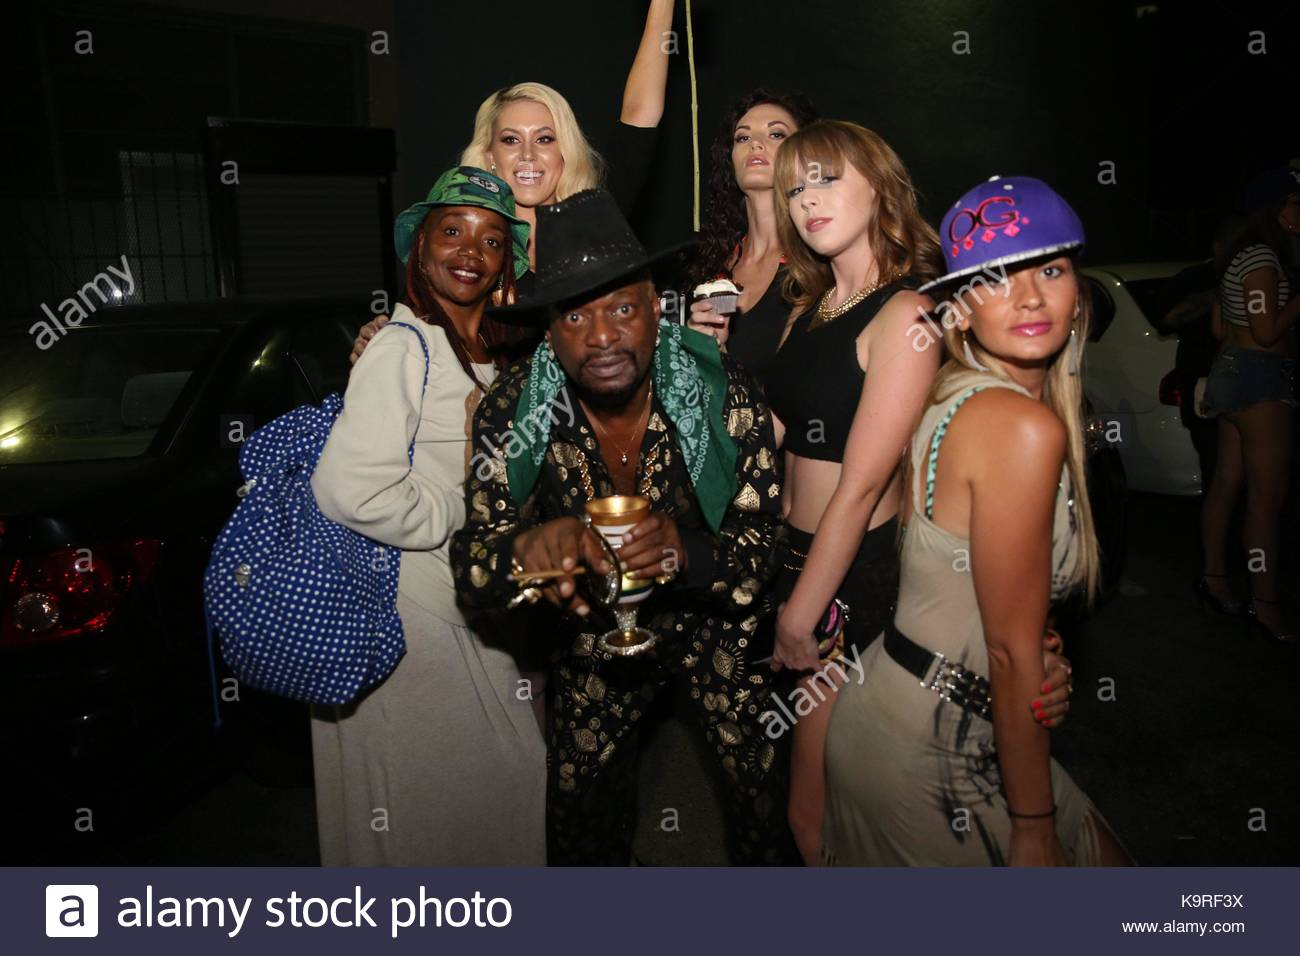 guests. bishop don magic juan brought playboy tv host andrea lowell